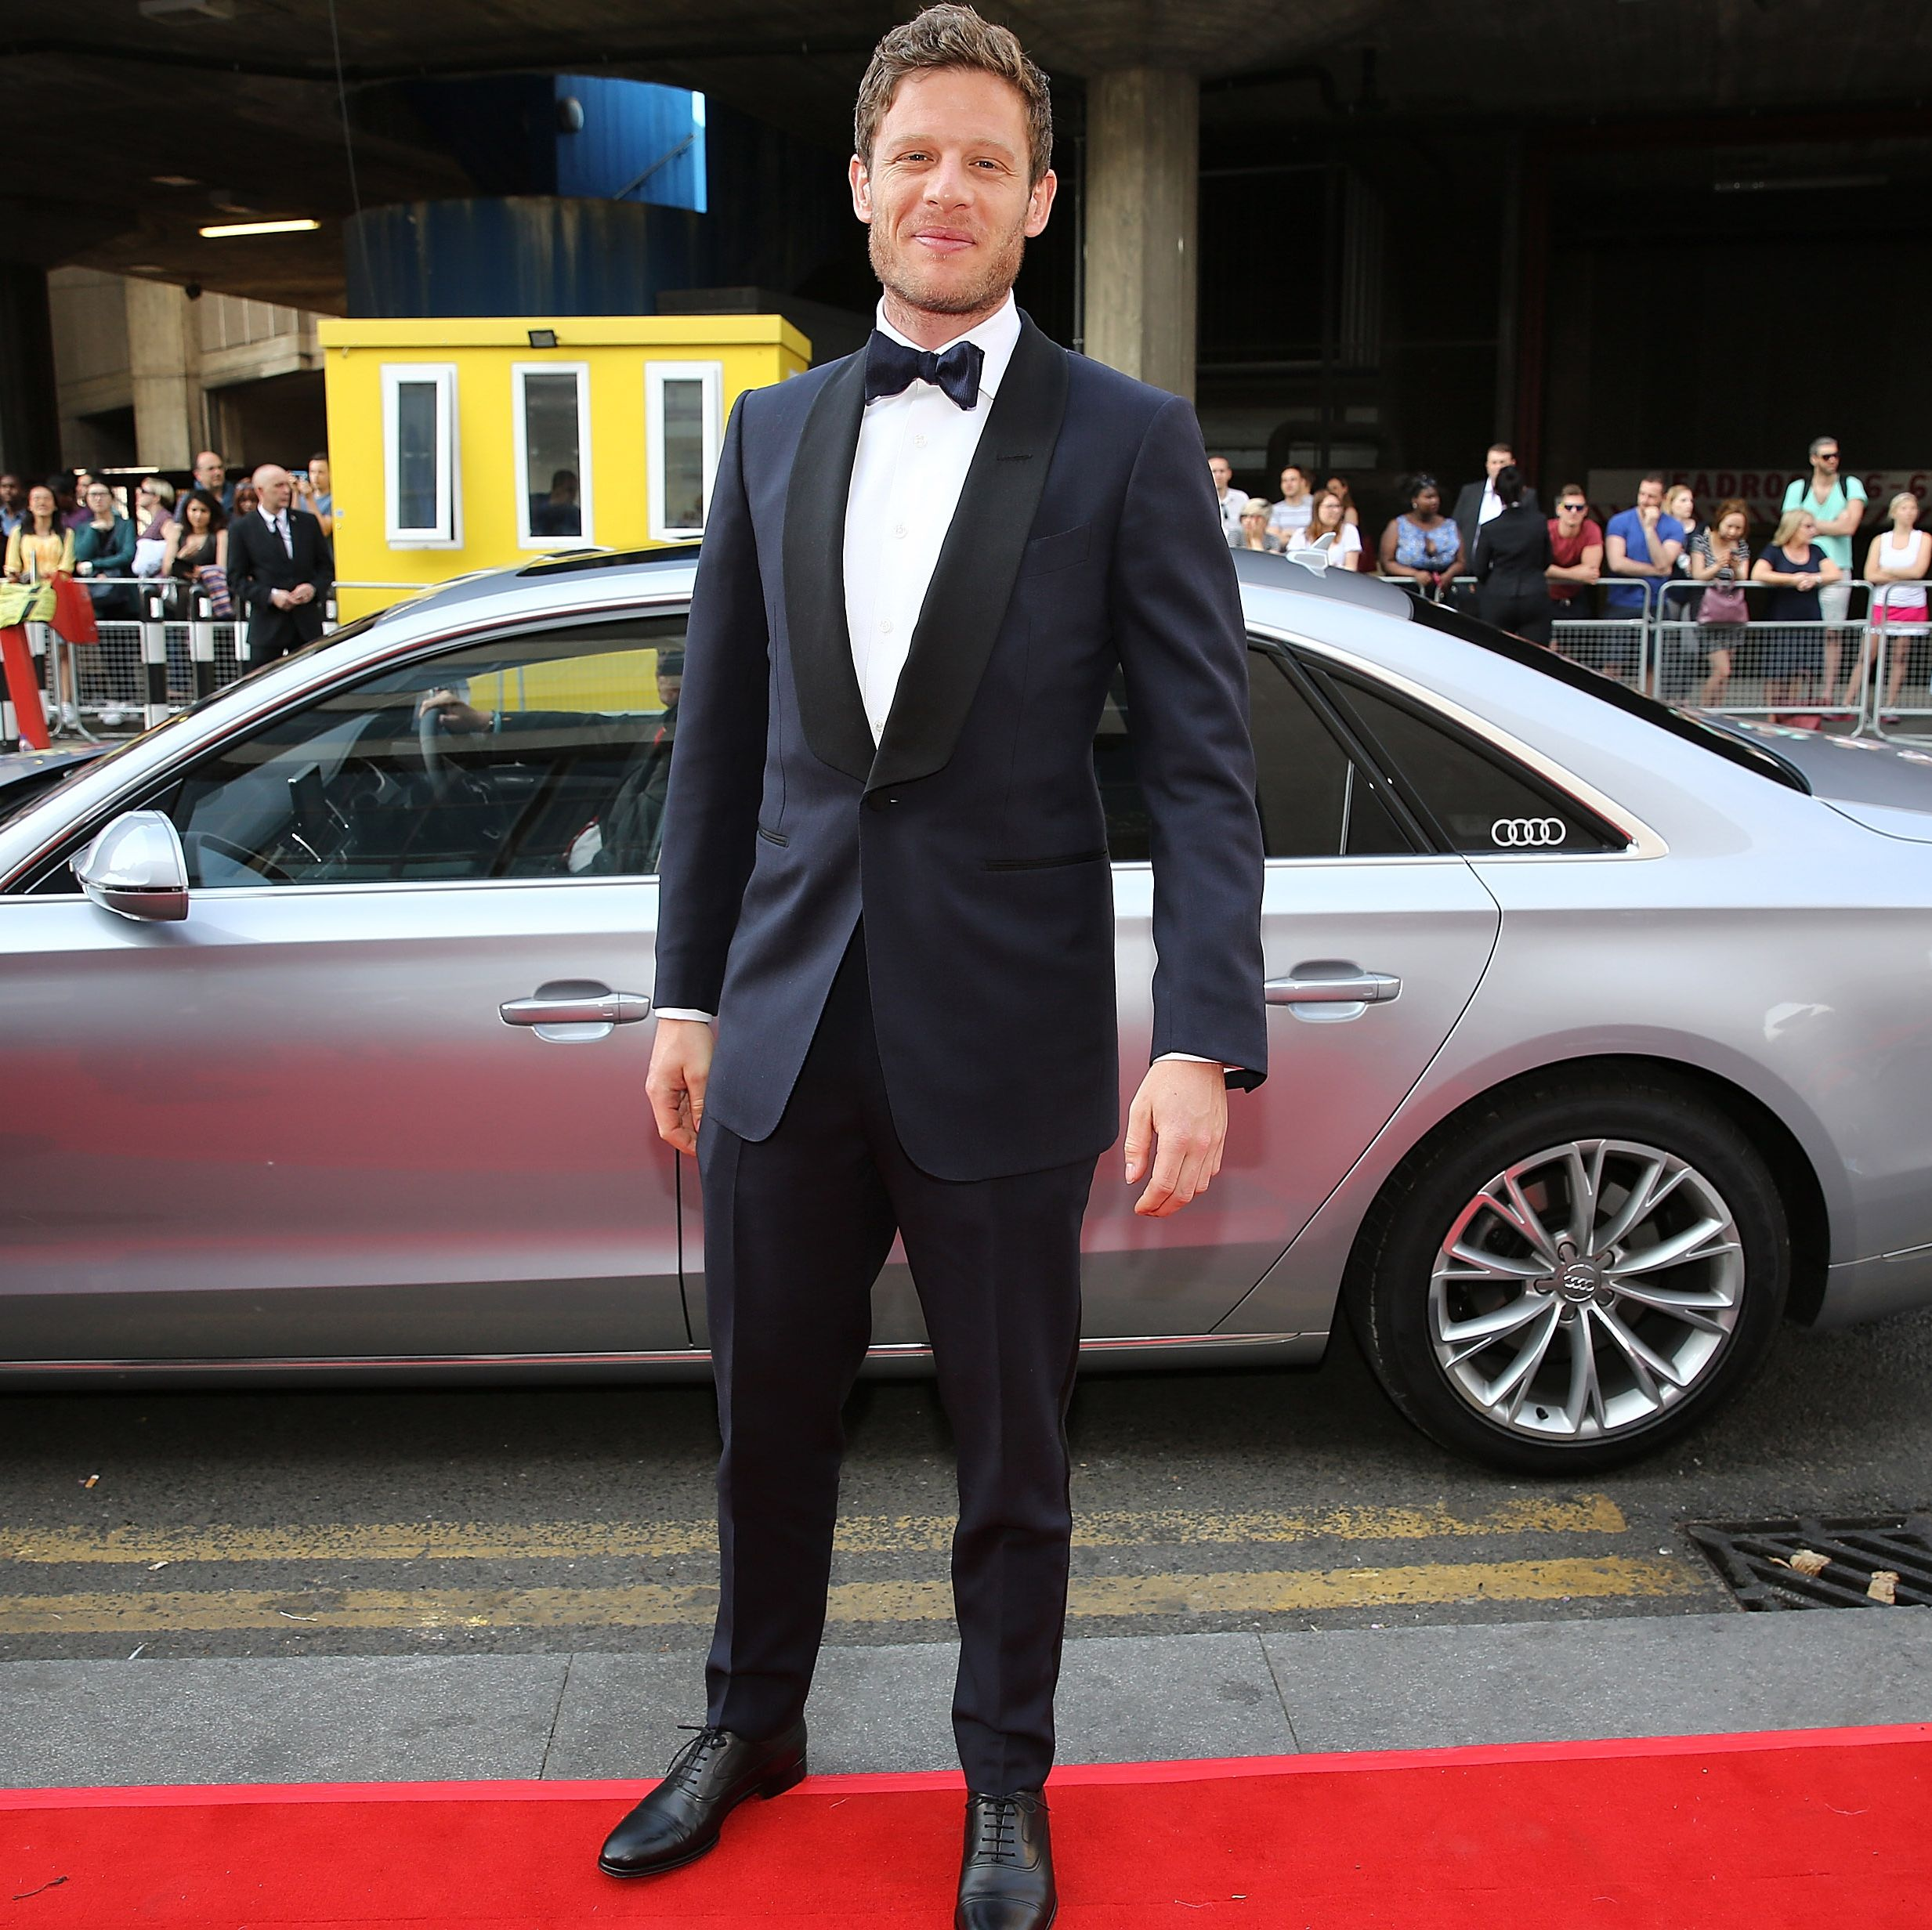 James Norton on the red carpet at the 2016 BAFTA awards. Norton is among the six men who oddsmakers consider in the running to replace Daniel Craig as James Bond.